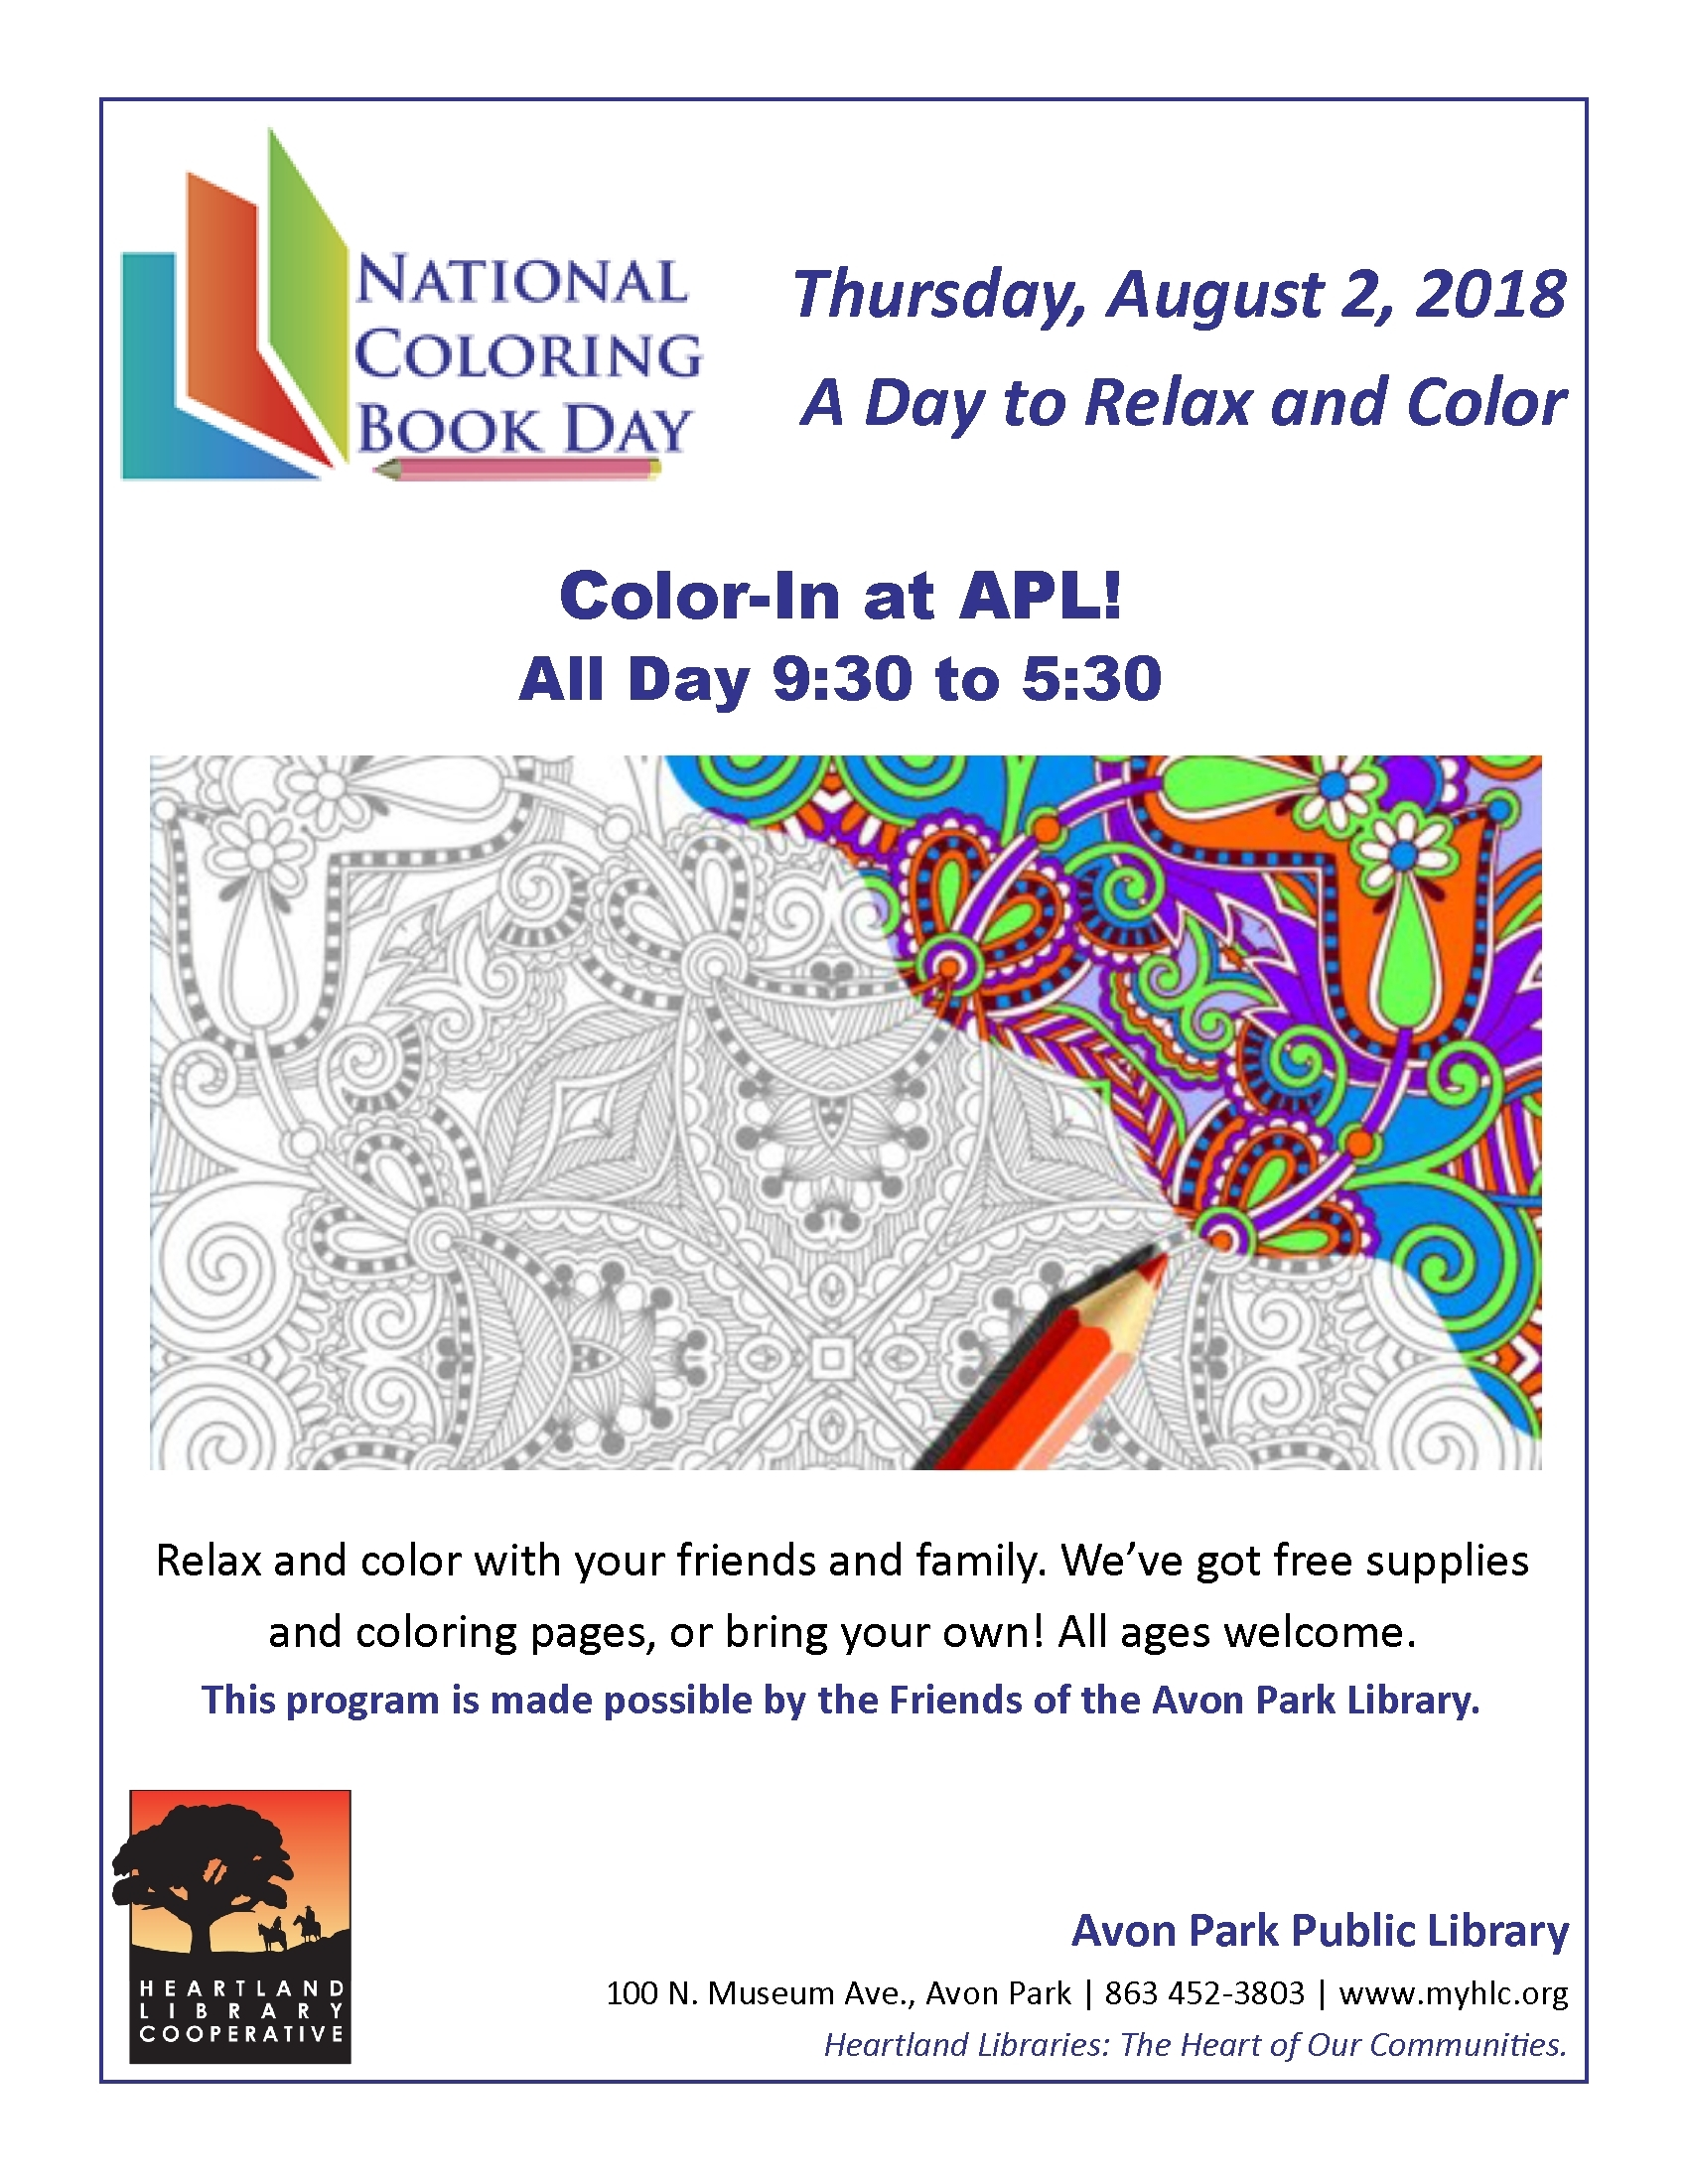 Apl National Coloring Book Day 2018 Heartland Library Cooperative